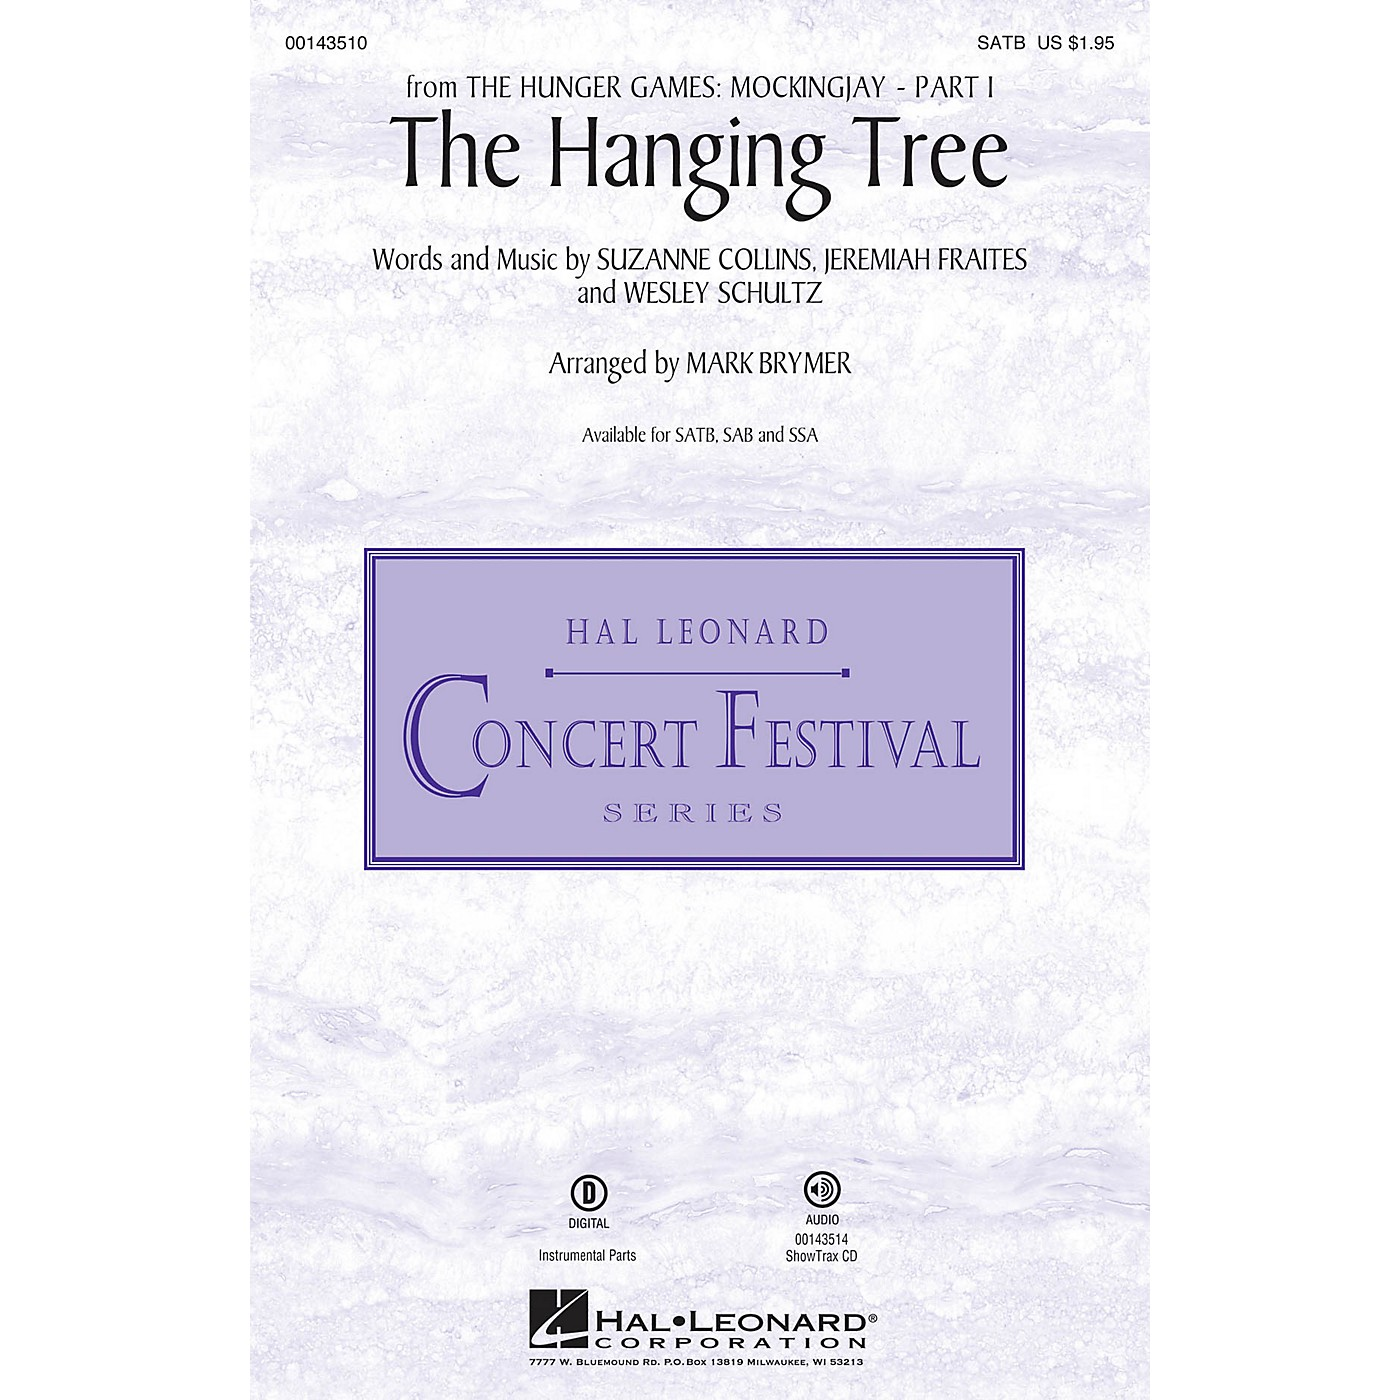 Hal Leonard The Hanging Tree (from The Hunger Games: Mockingjay Part I) SATB arranged by Mark Brymer thumbnail